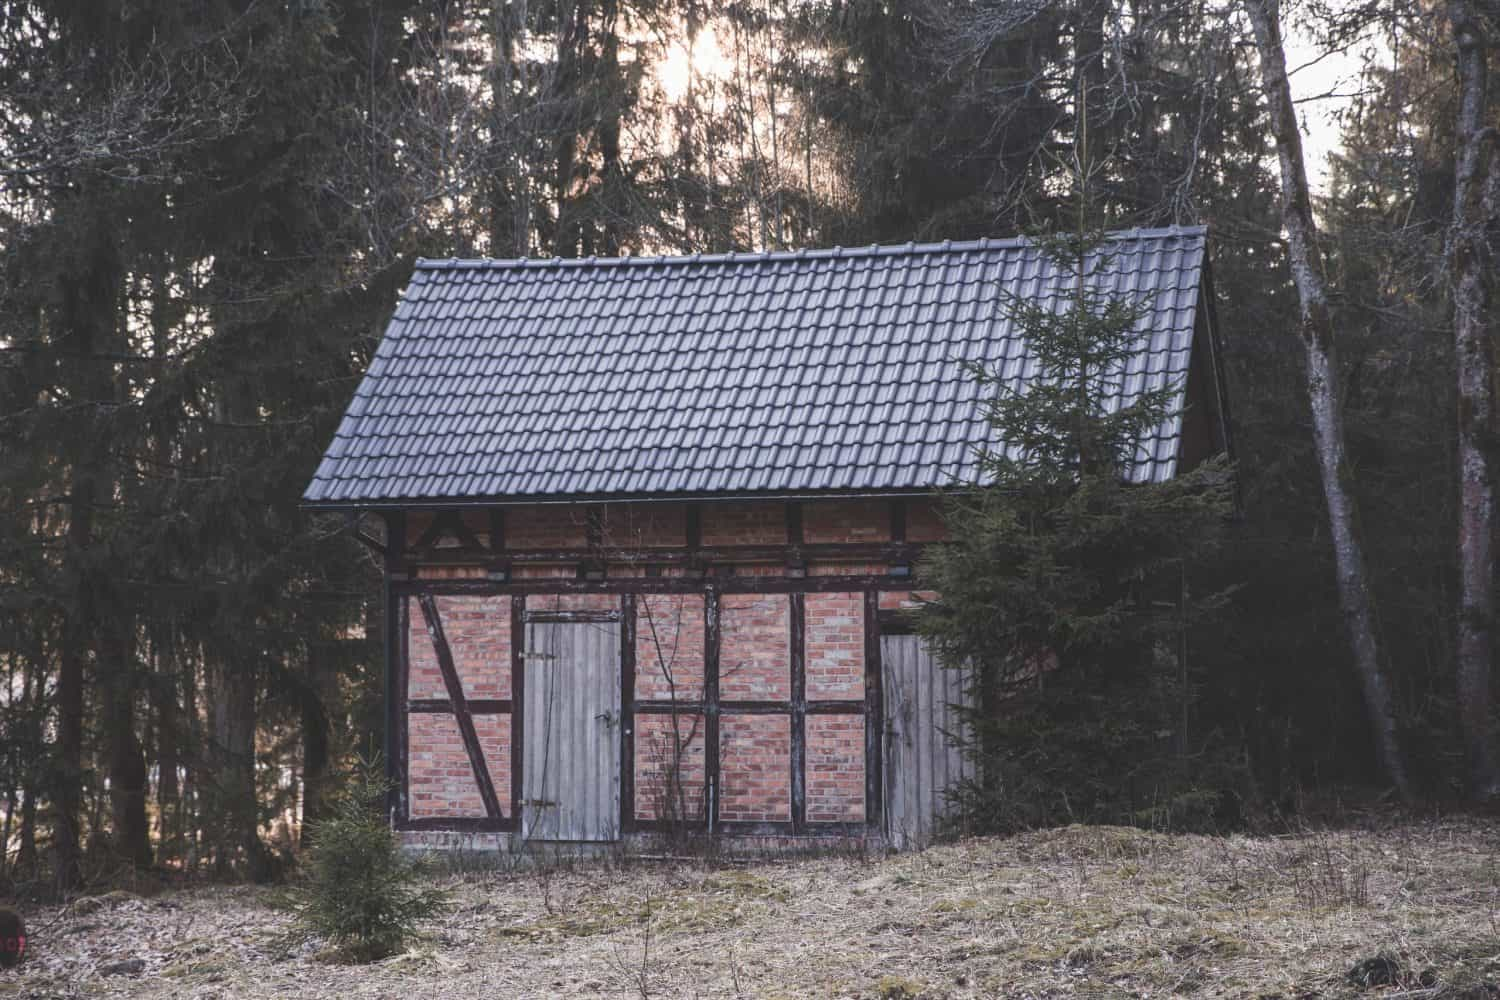 Brick house in Harz National Park in the Harz Mountains